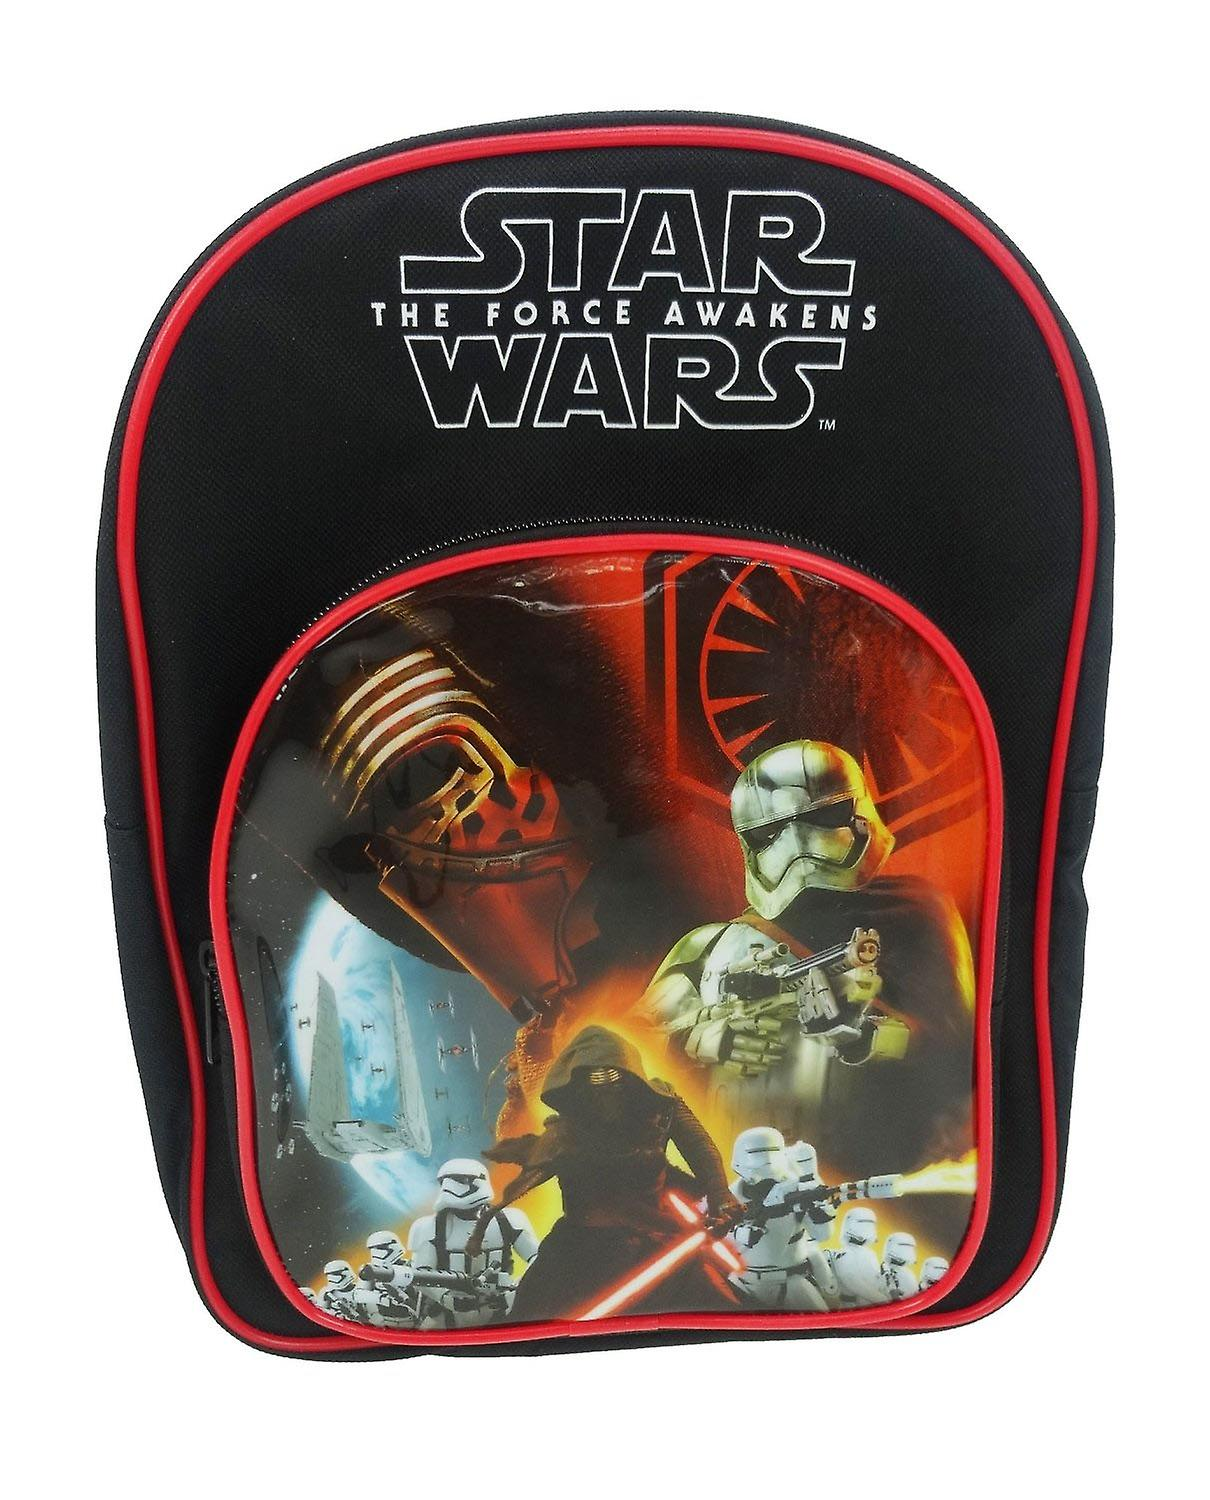 Star Wars Episode 7 The Force Awakens Rule the Galaxy Backpack School Bag